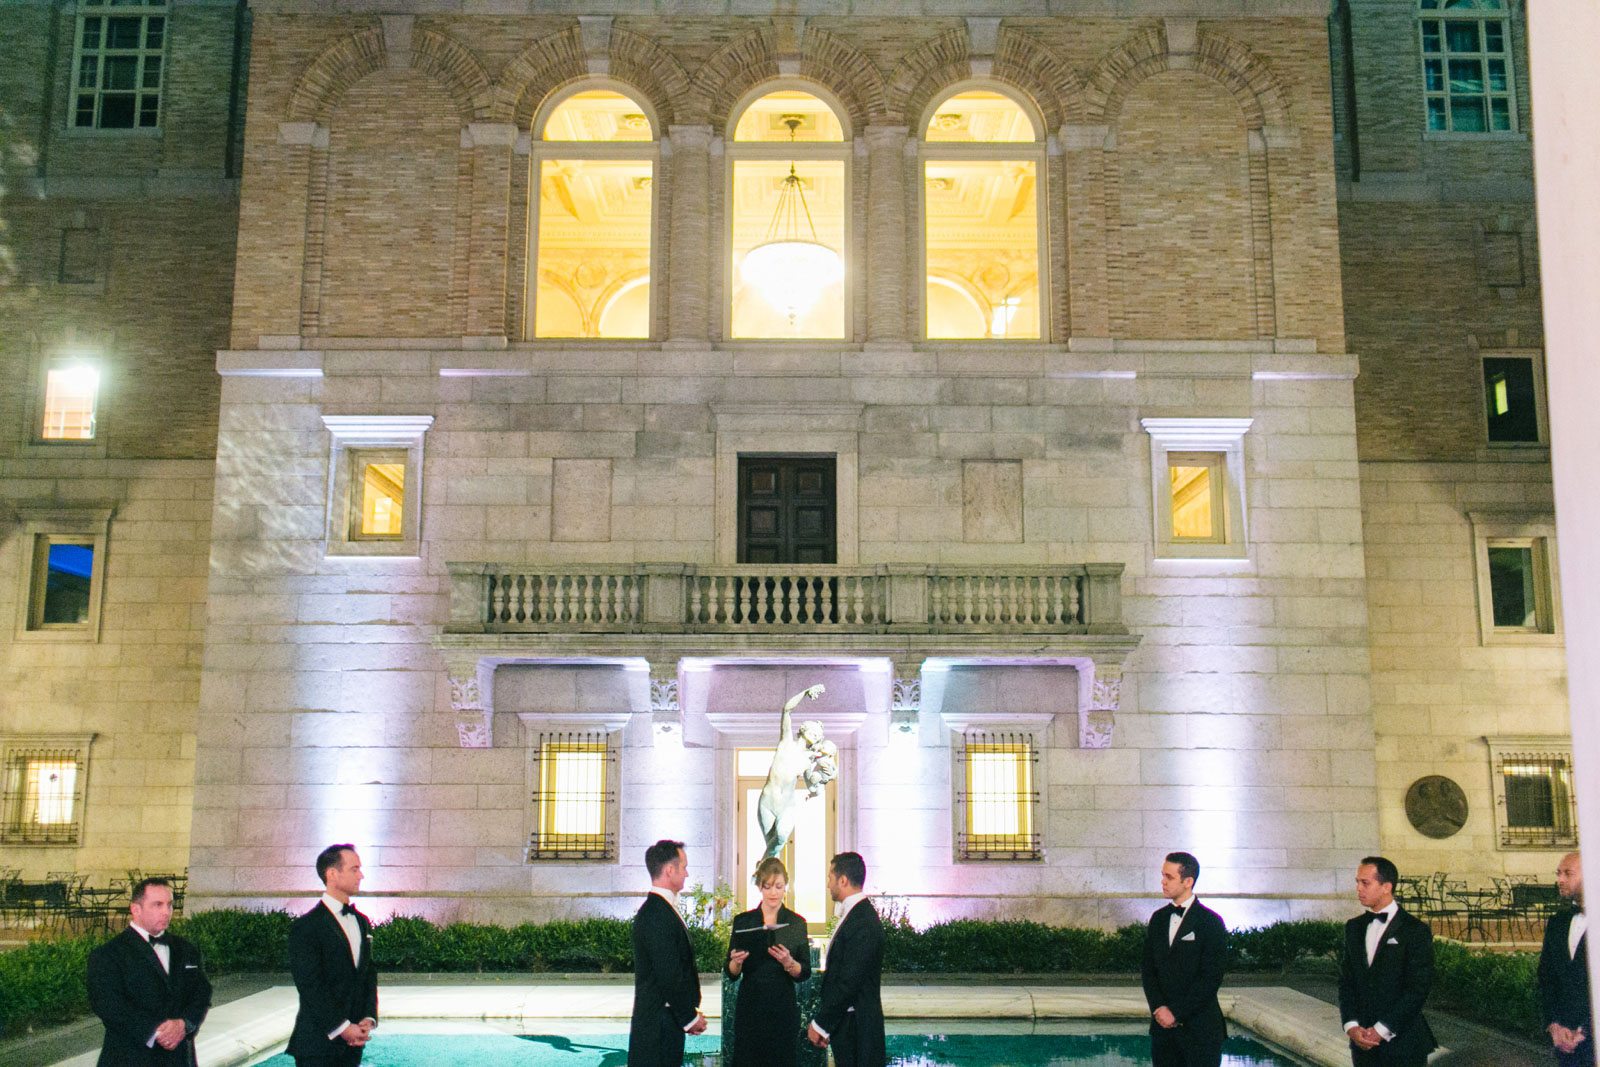 wedding ceremony in front of famous statue in courtyard of Boston public library at night